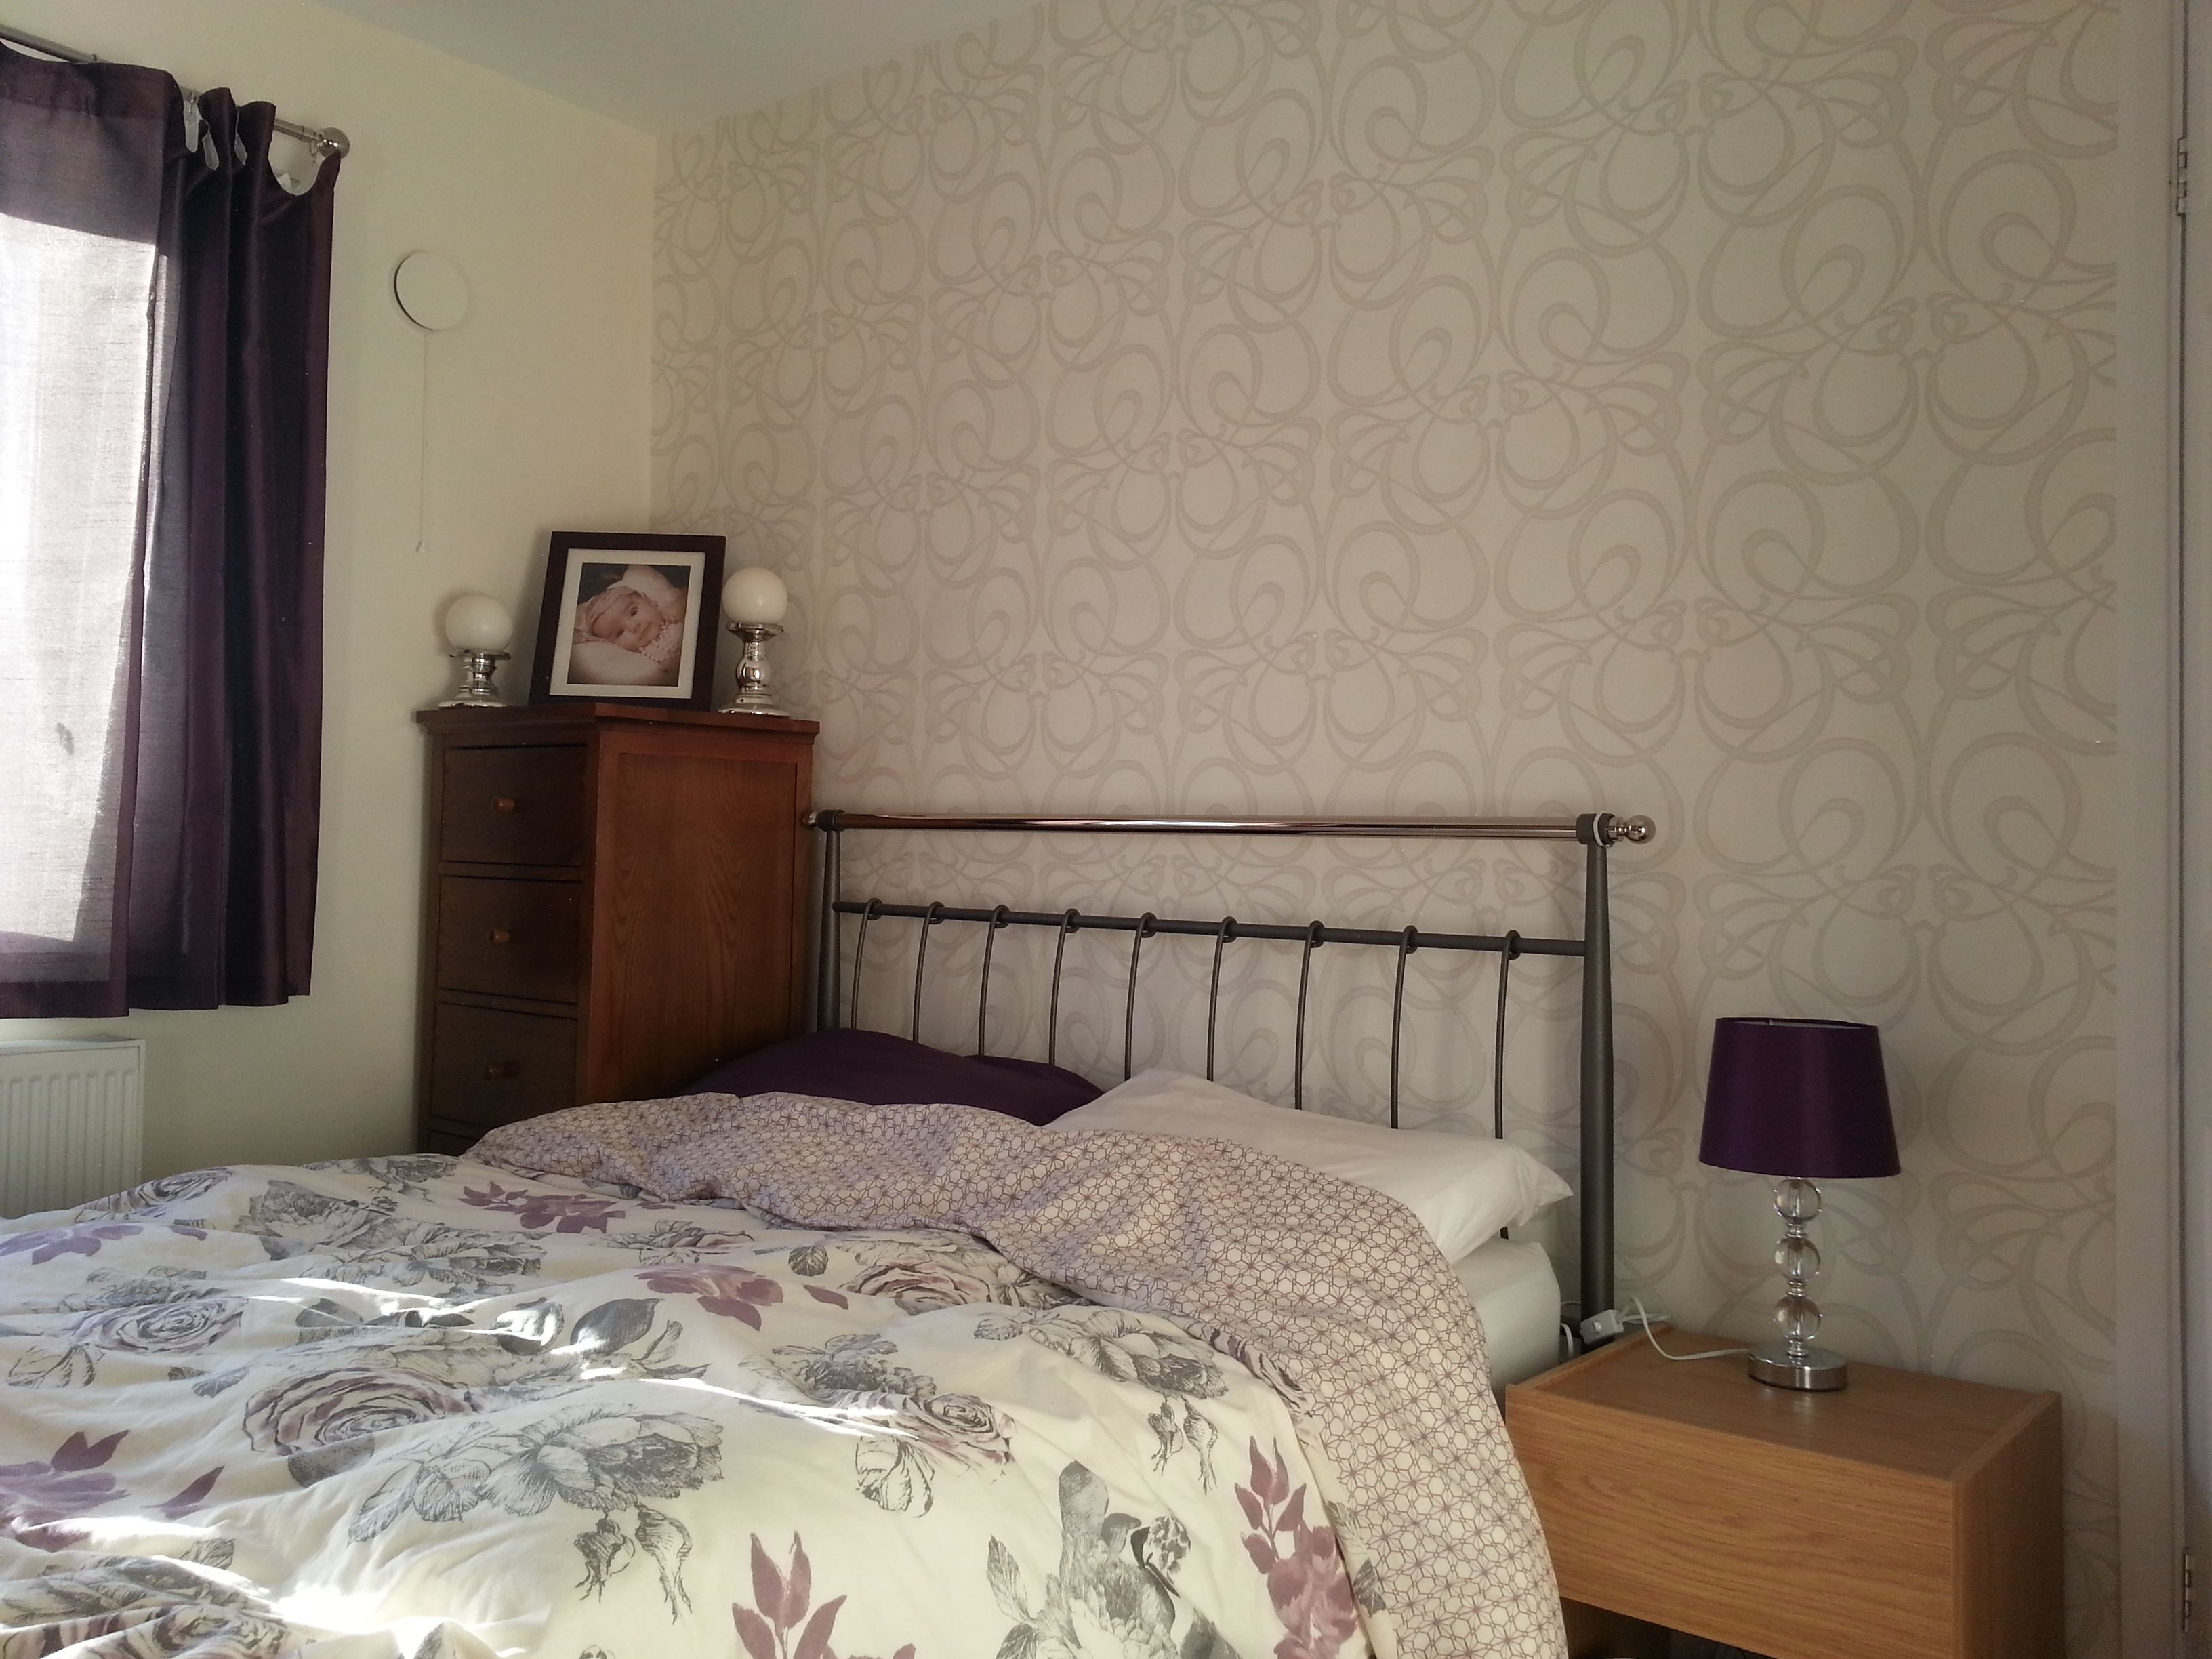 Bedroom wallpaper finished Homebase (With images